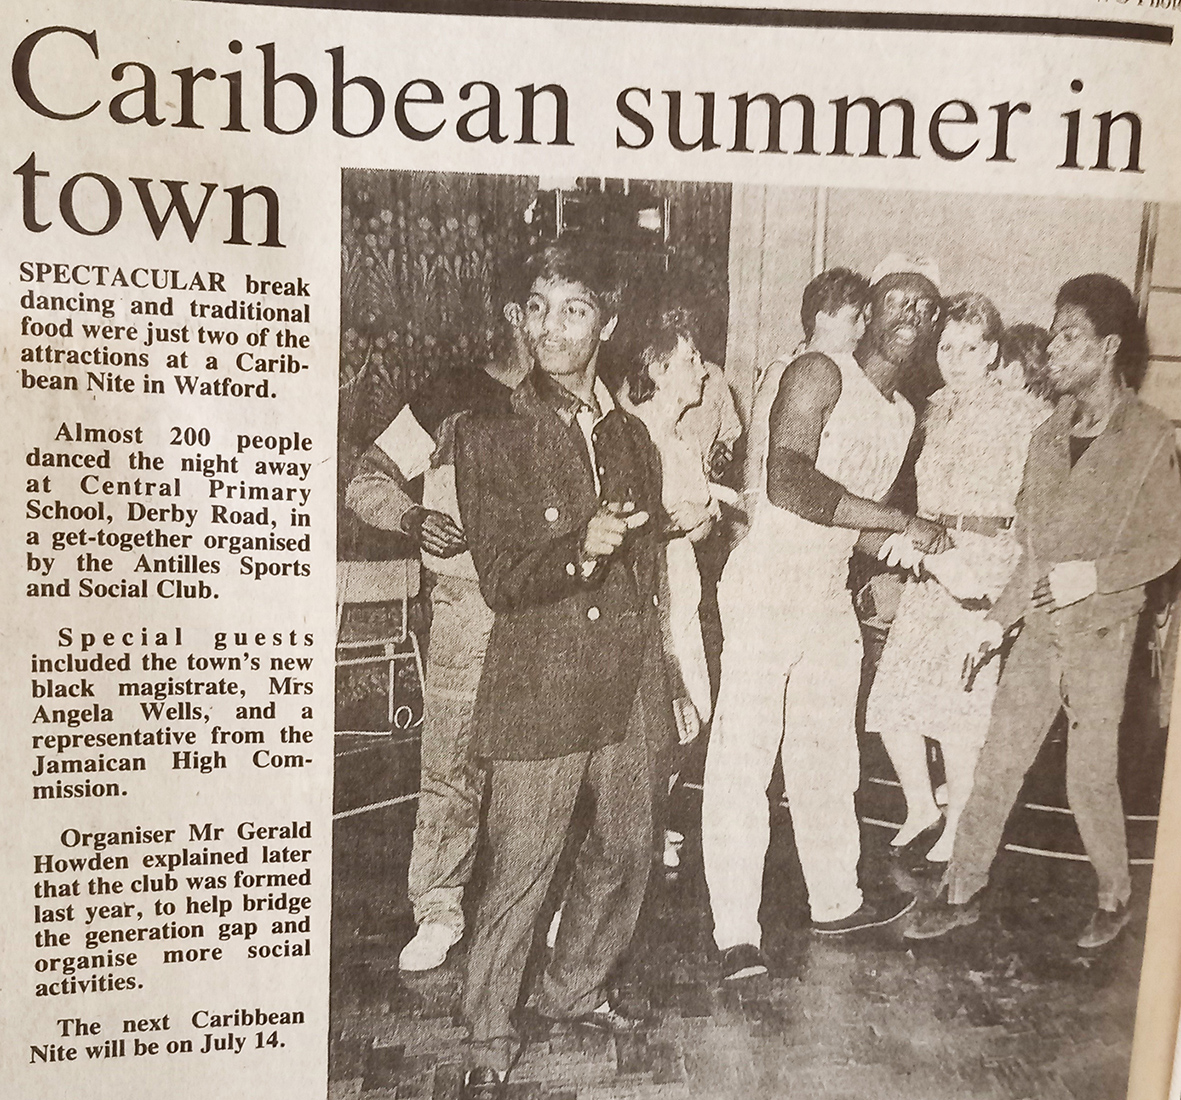 Photograph of Caribbean night | West Herts and Watford Obsever, 29 June 1984